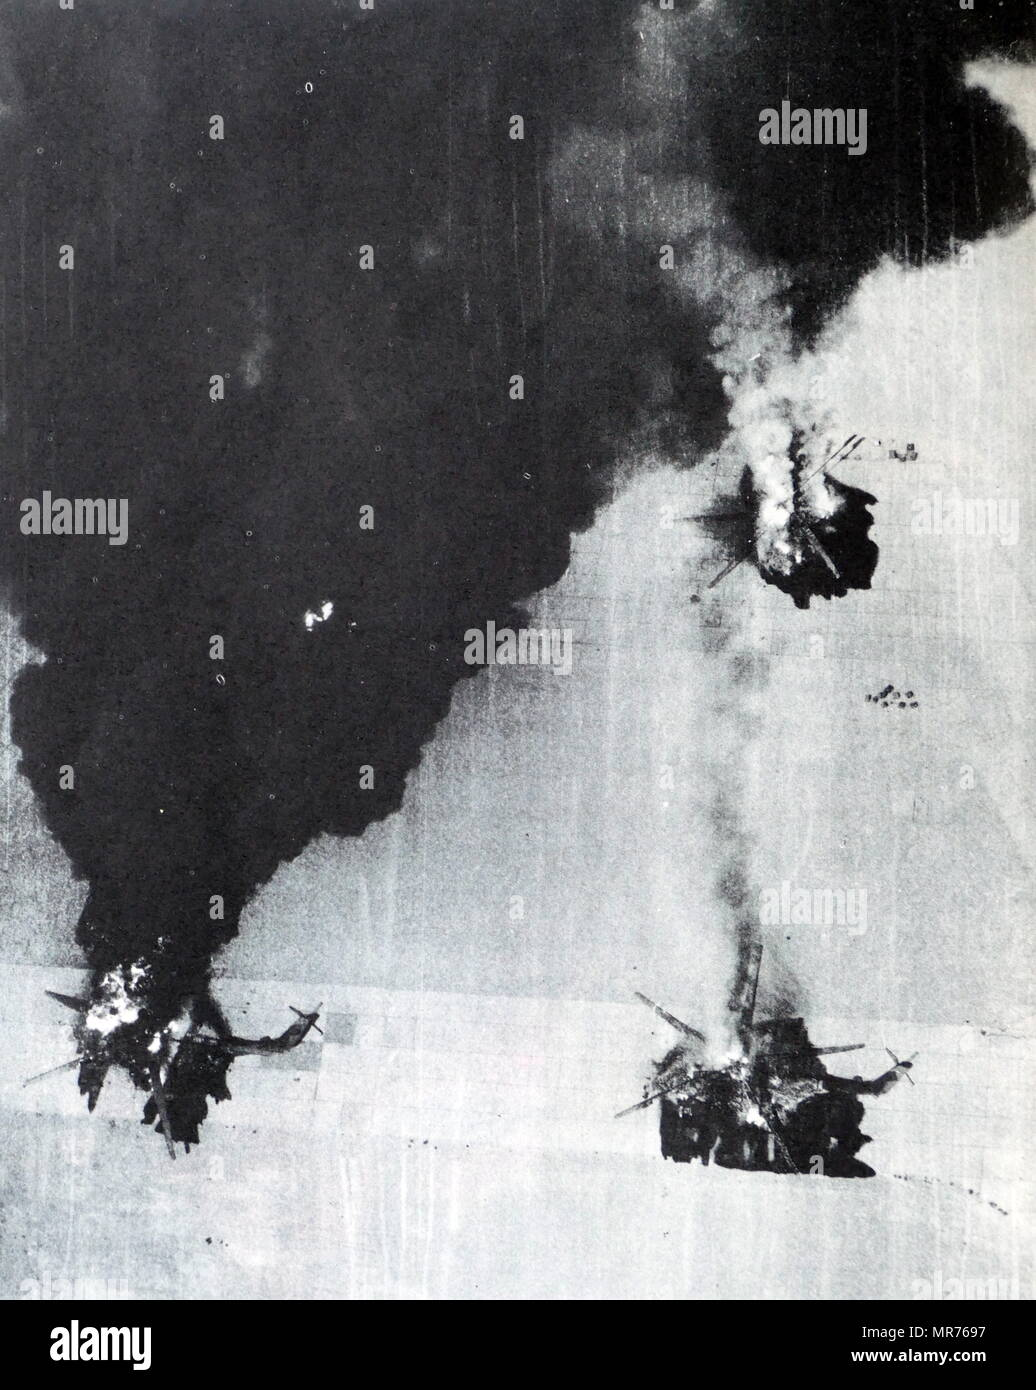 Egyptian aircraft were destroyed by the Israeli Air Force, during the Six Day War - Stock Image